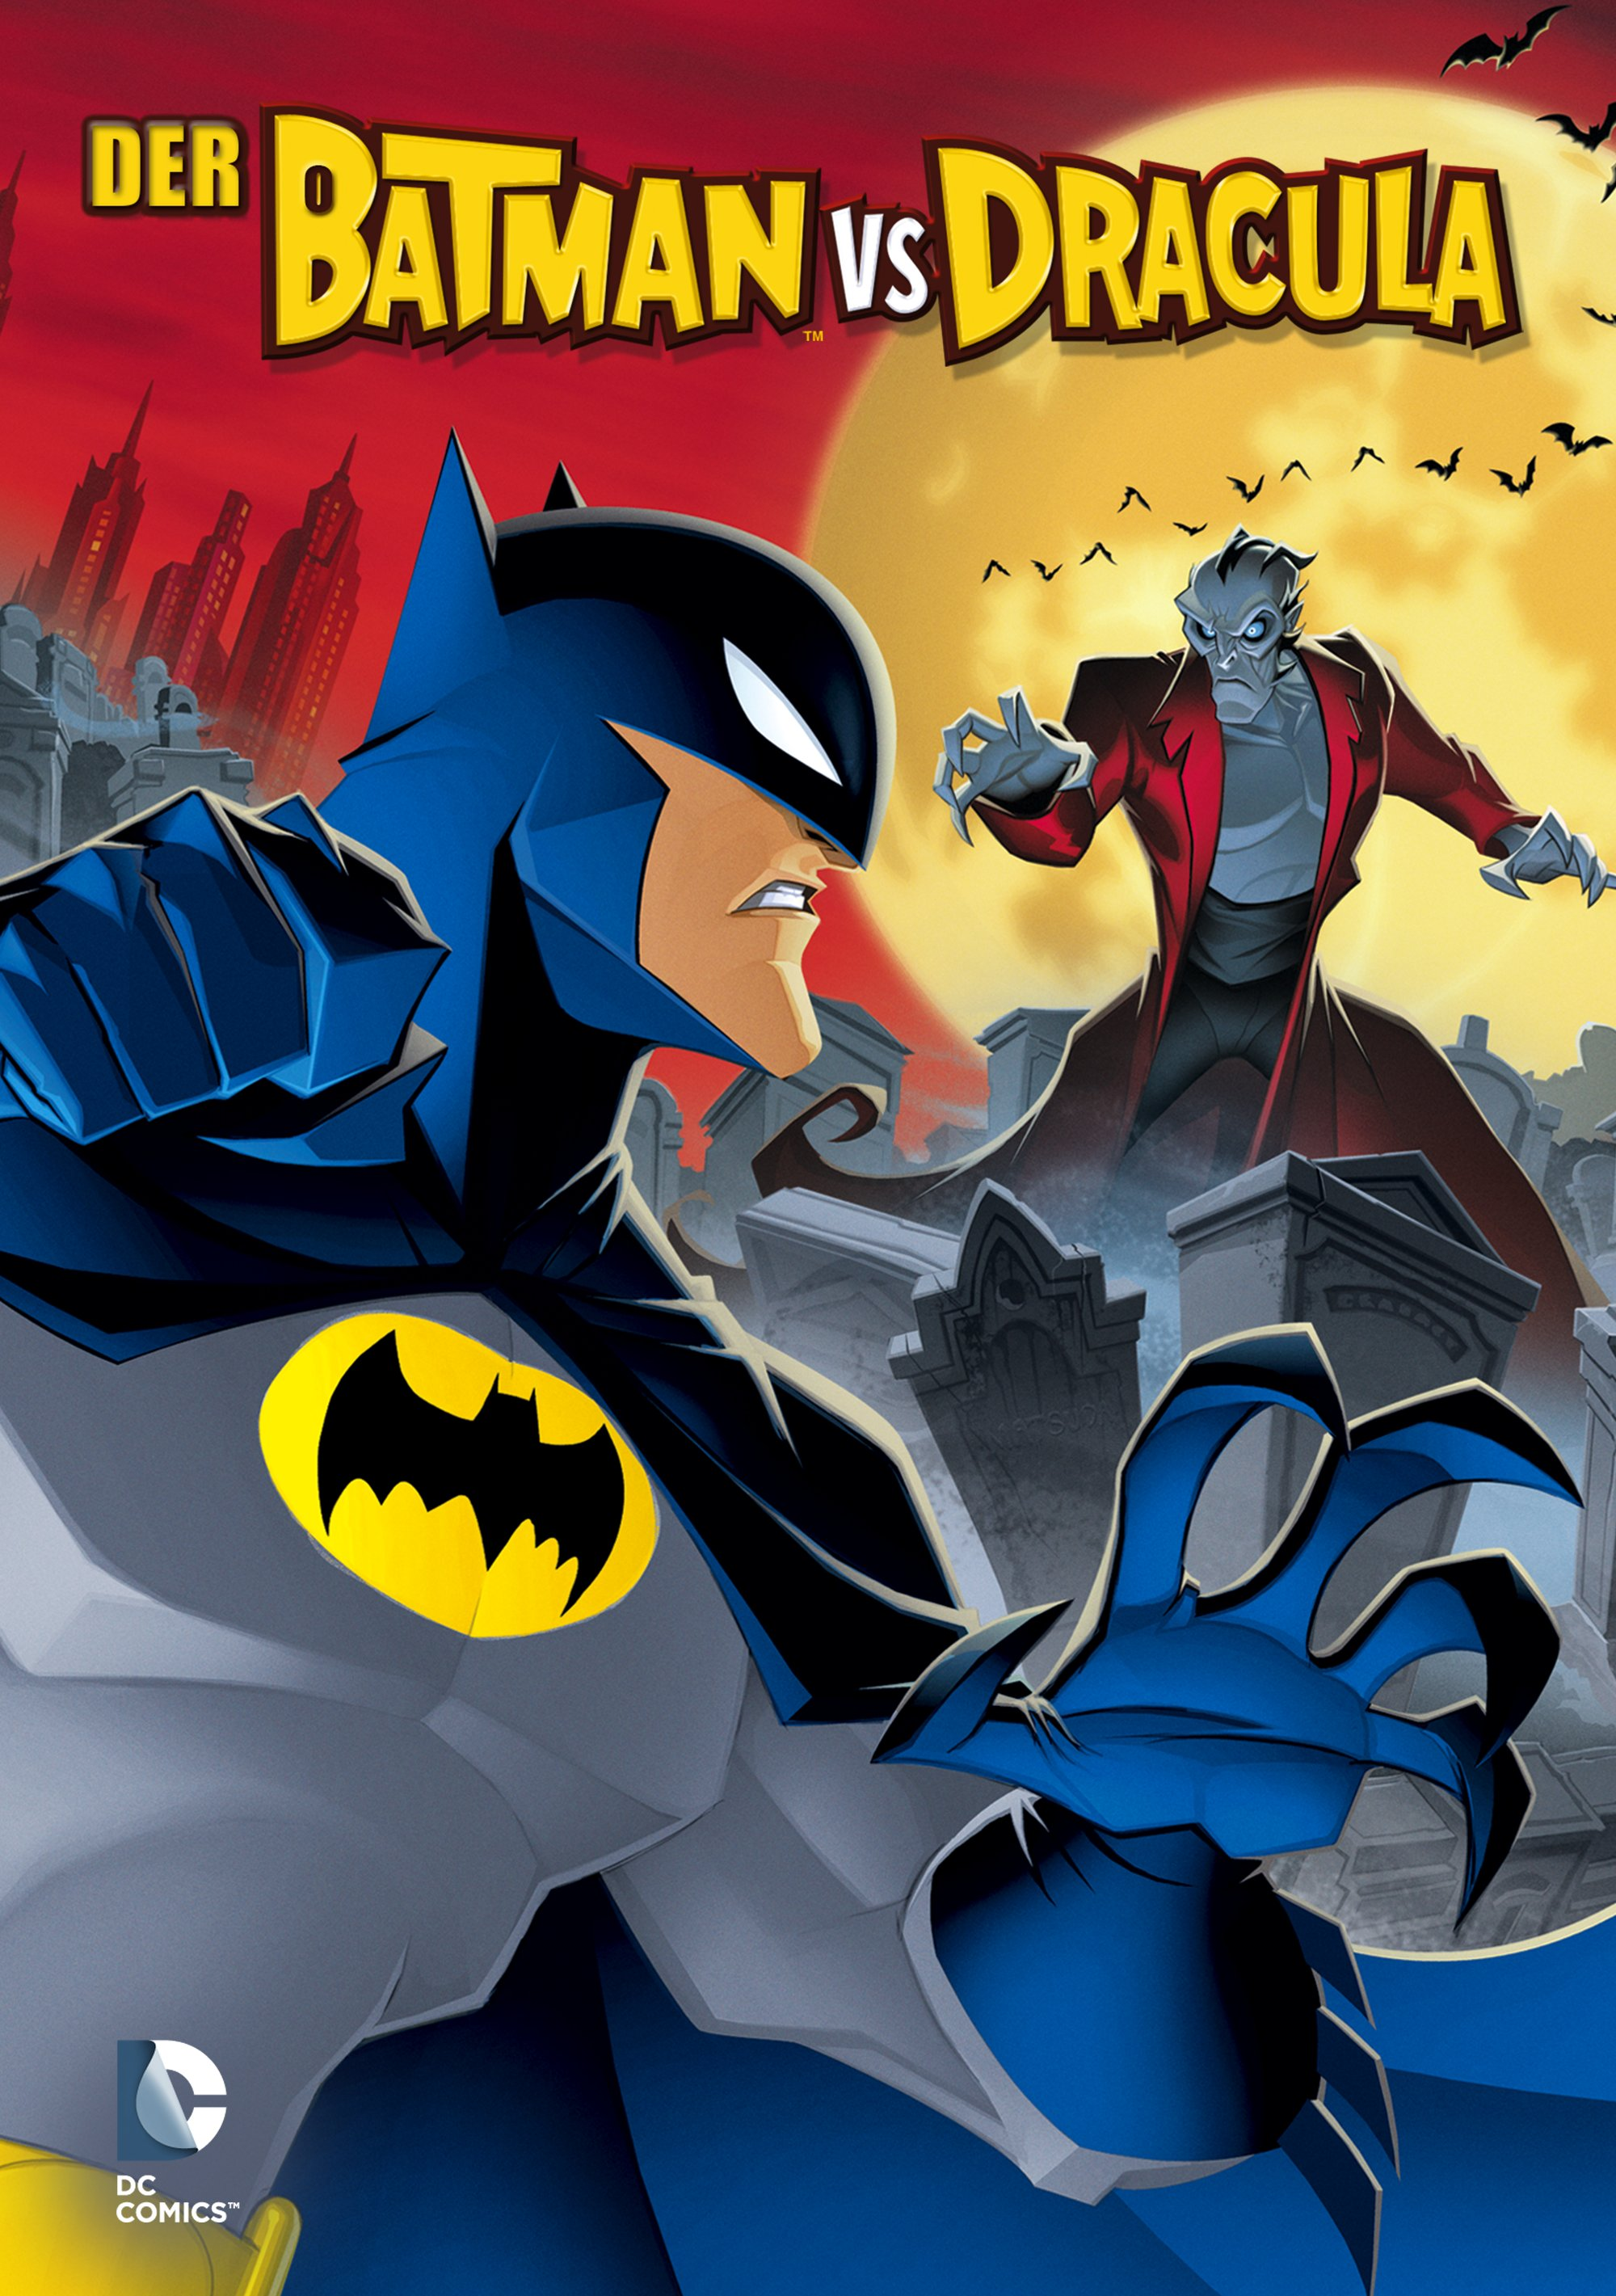 Der Batman vs. dracula stream